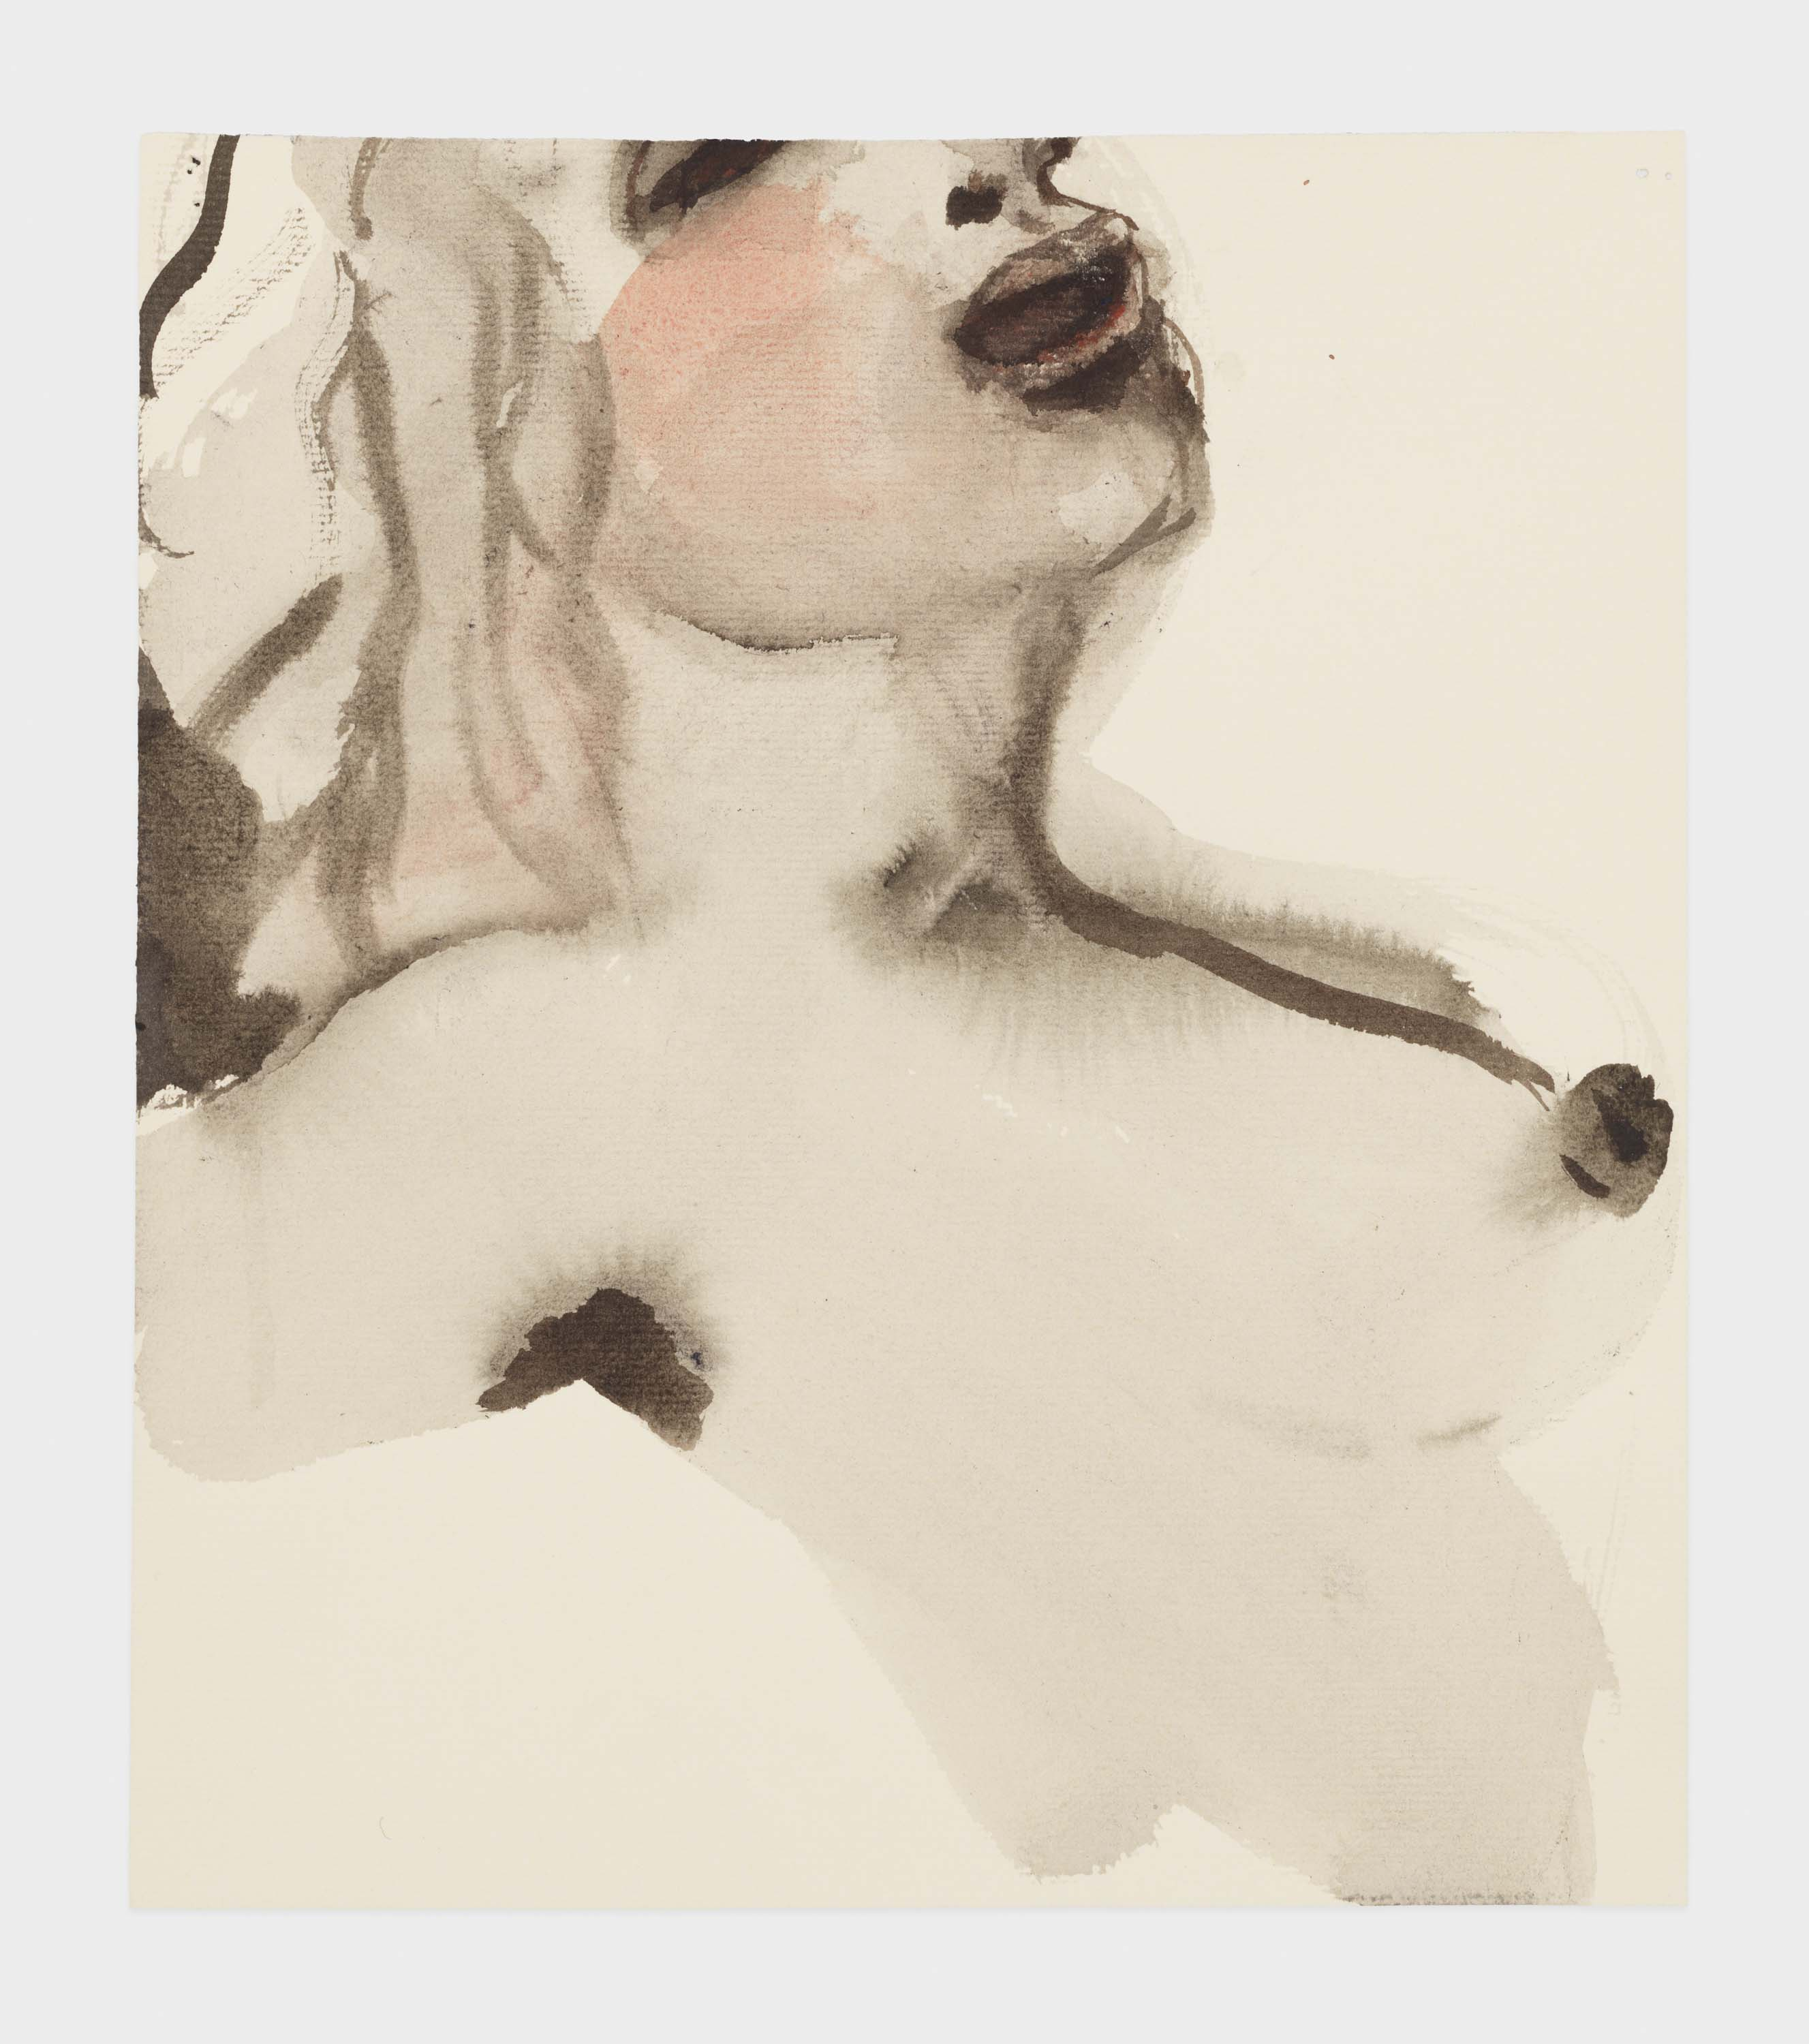 """Marlene Dumas, """"Venus in bliss"""", 2015-2016, Ink wash and metallic acrylic on paper 10 1/4 x 9 inches 26 x 22.9 cm. Exposition """"Myths & Mortals"""", Galerie David Zwirner, New-York"""